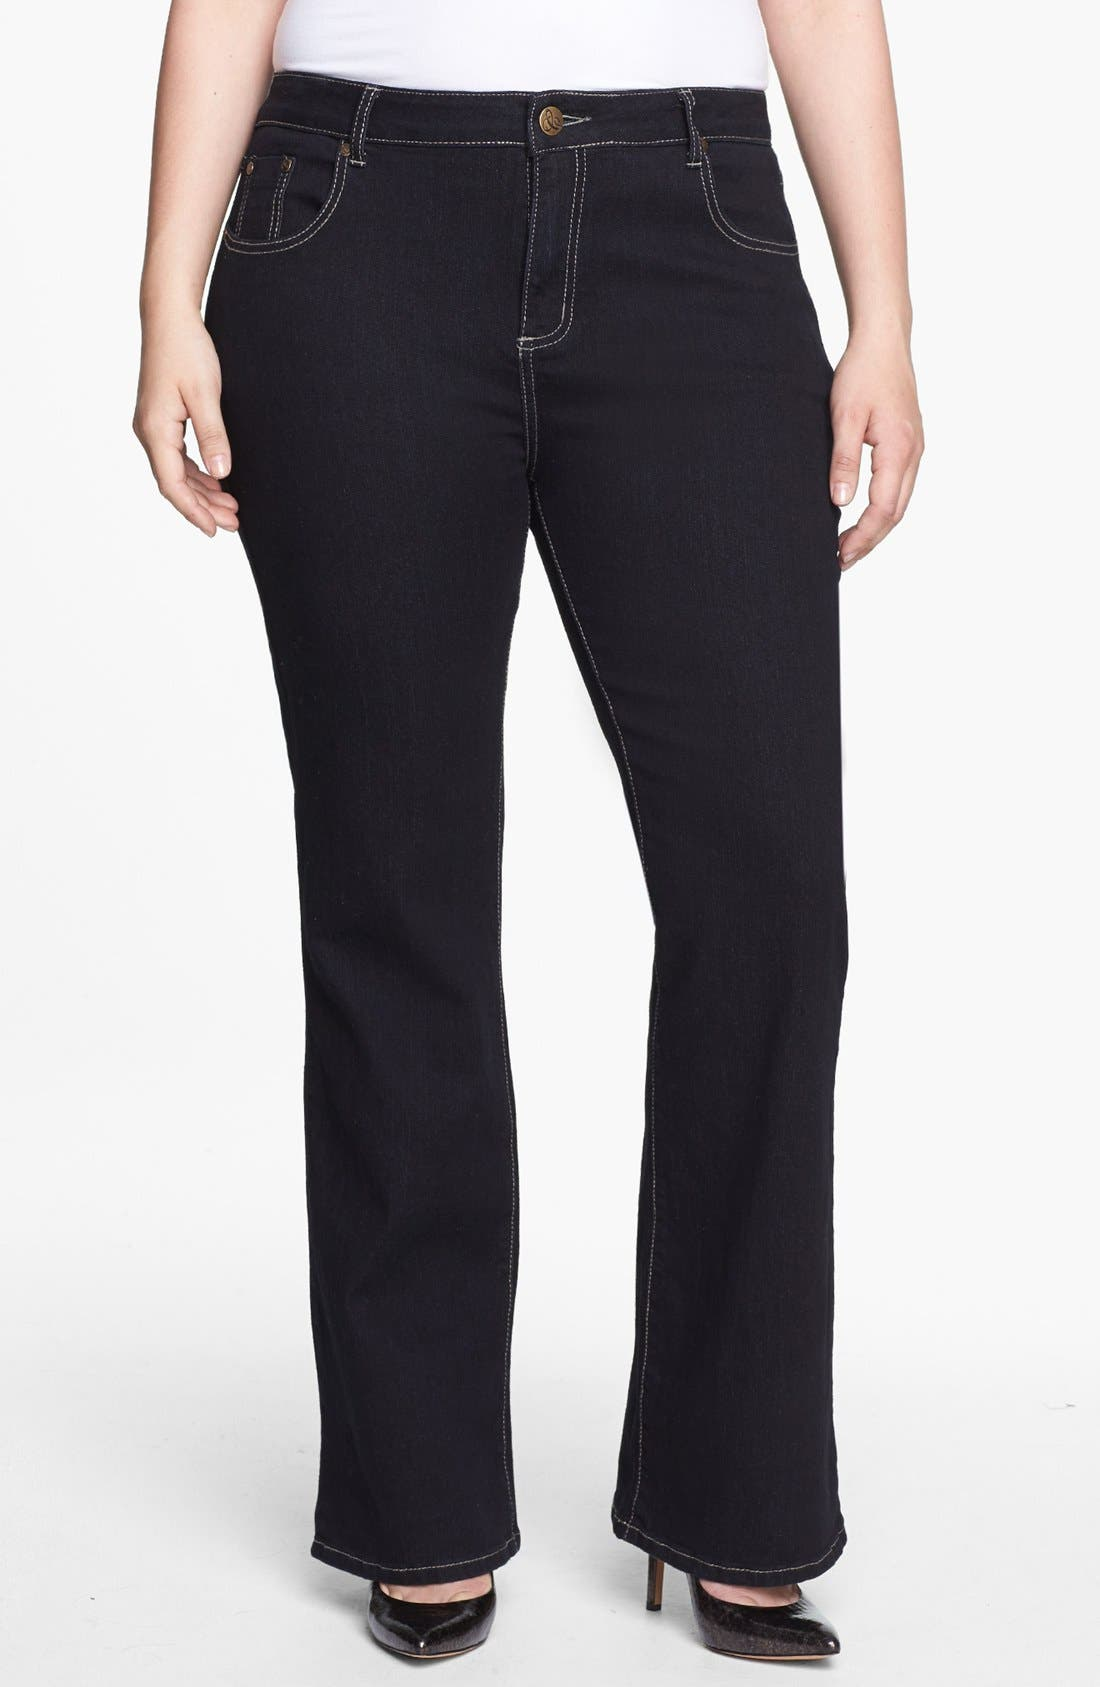 Main Image - City Chic 'Glam' Bootcut Stretch Jeans (Plus Size)